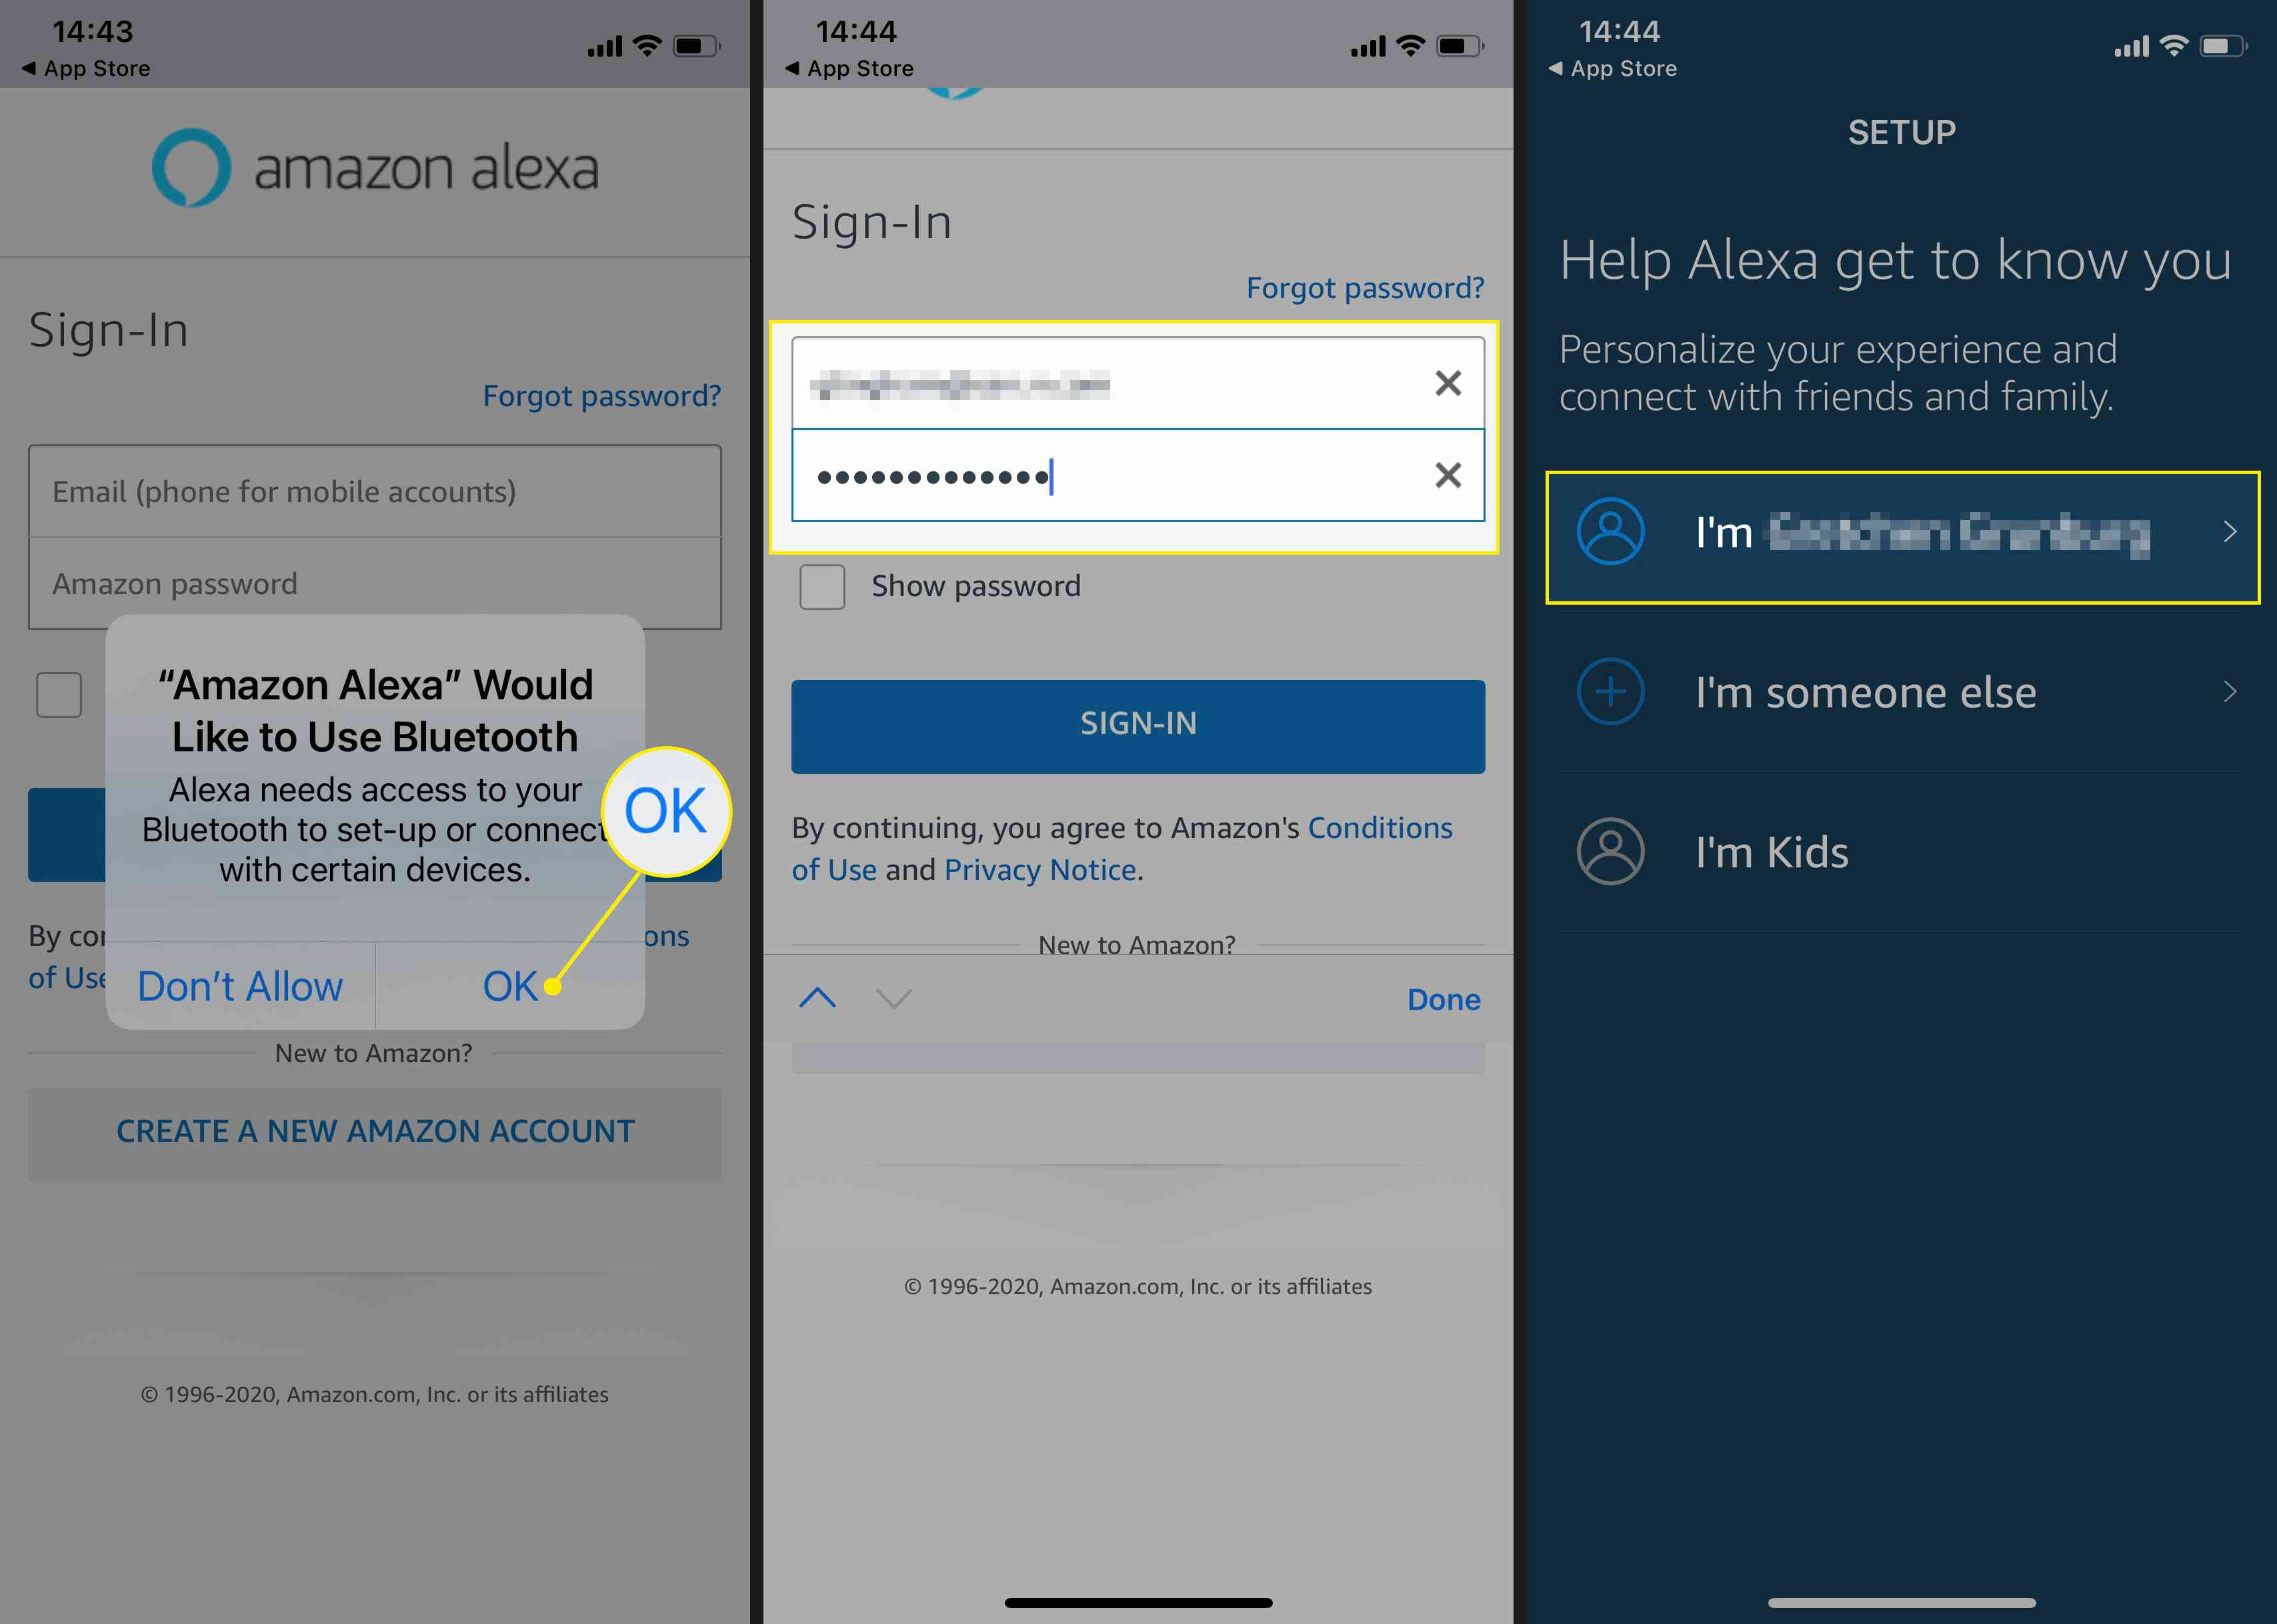 Allow Bluetooth, sign in to your Amazon Account, and confirm your credentials.